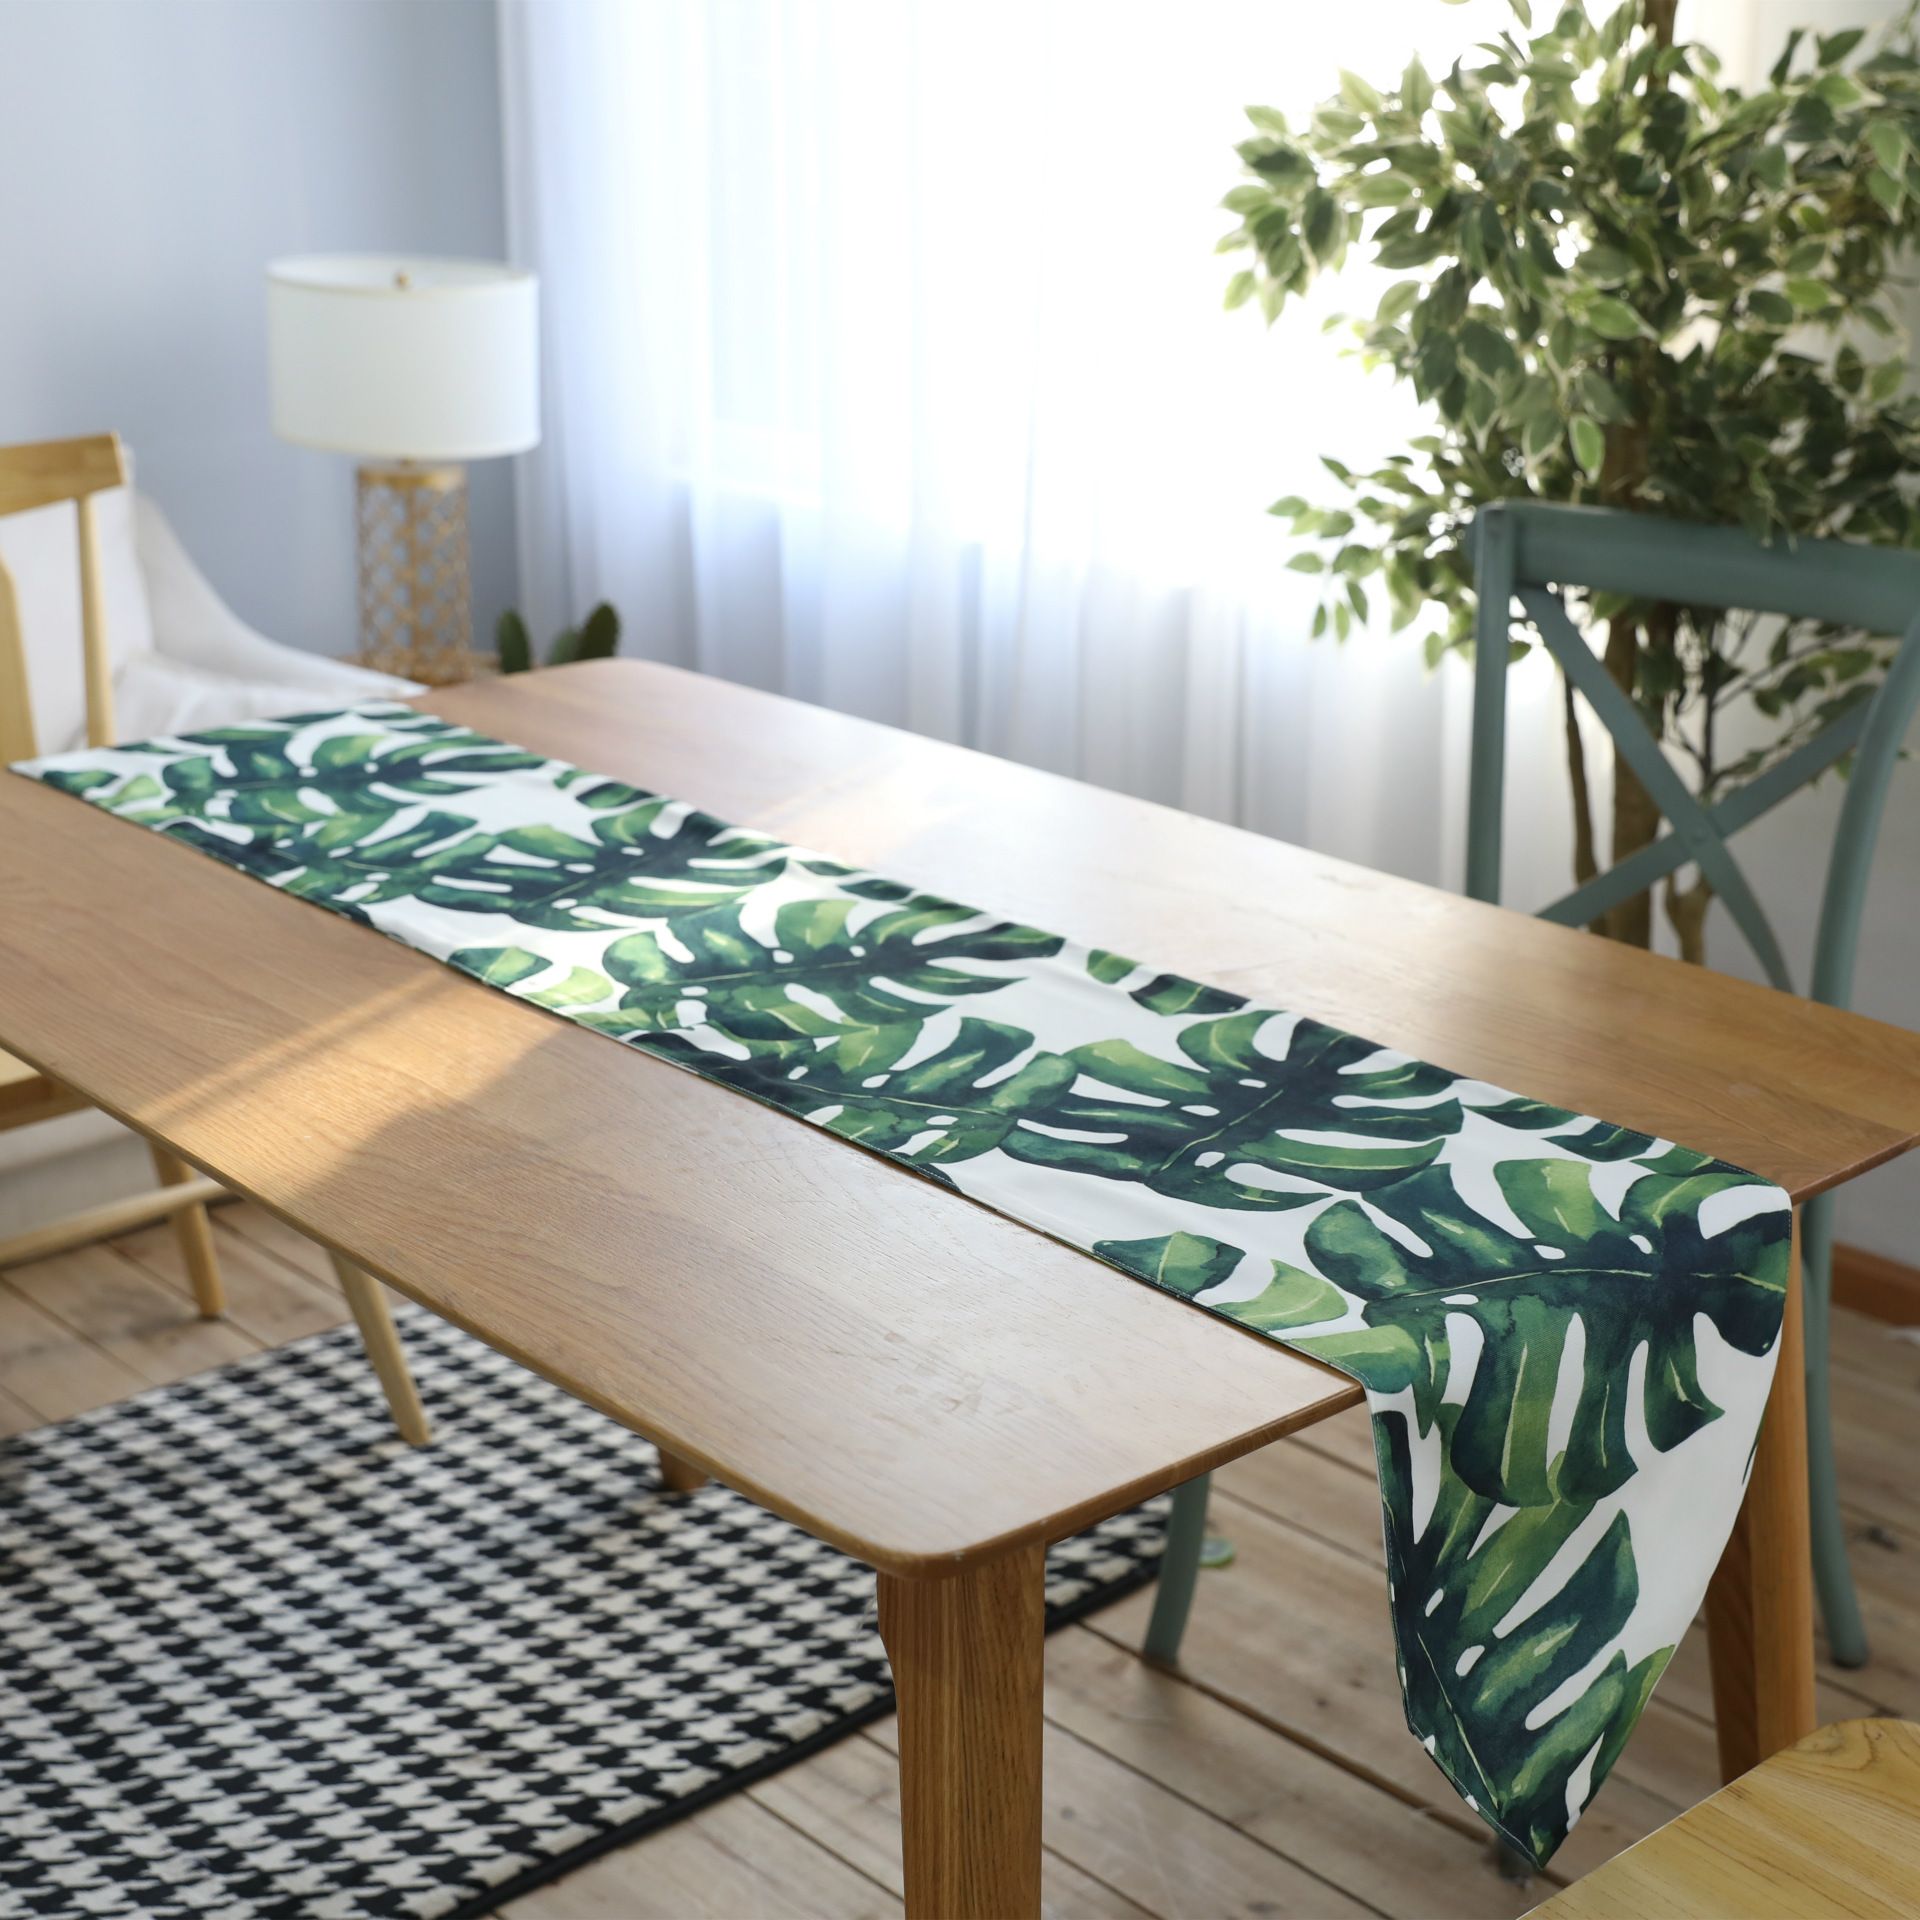 Bamboo Plant On Table: Waterproof Turtle Bamboo Plant Pattern Table Runner Green